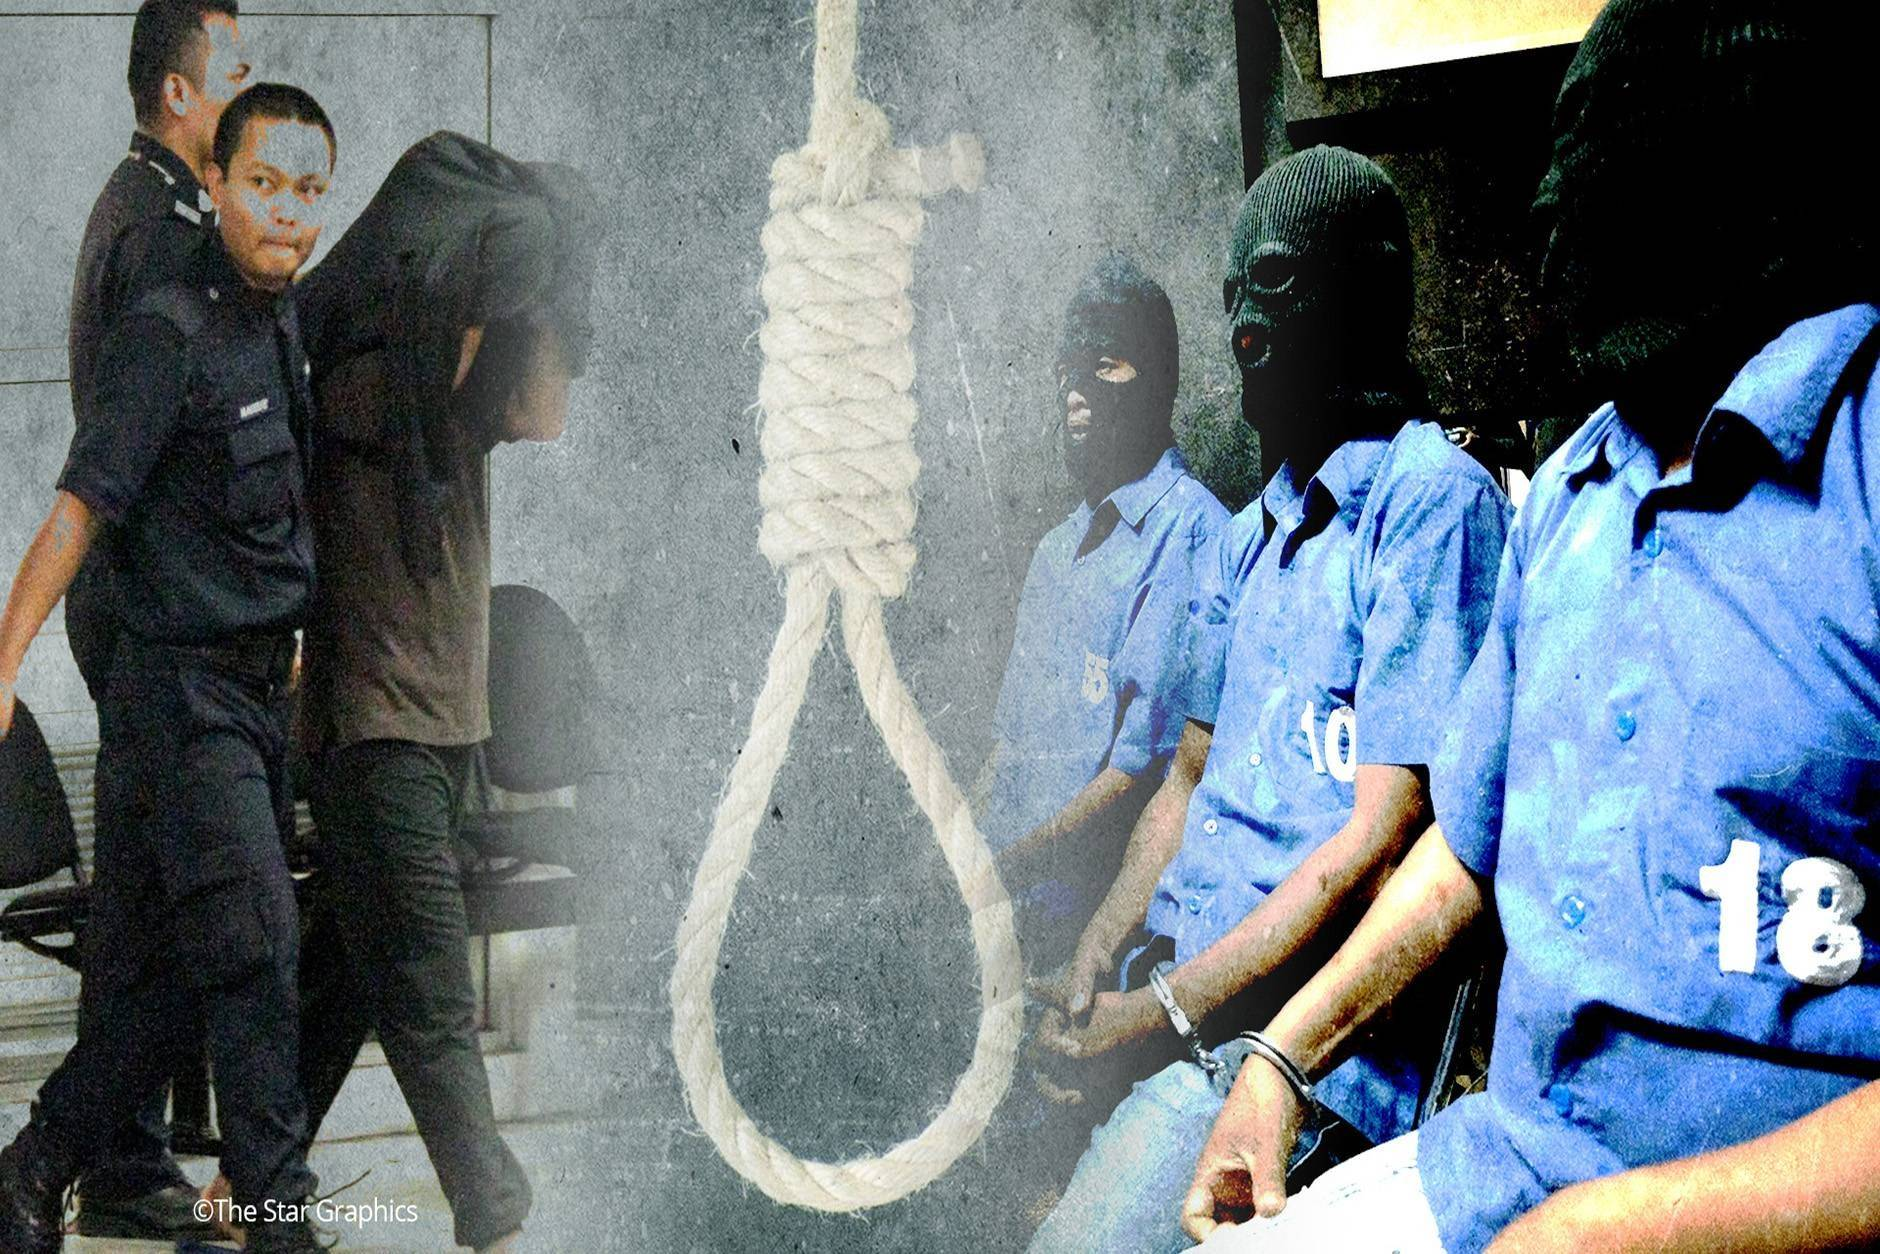 Singapore says it has right to use death penalty against drug offenders after Malaysian executed